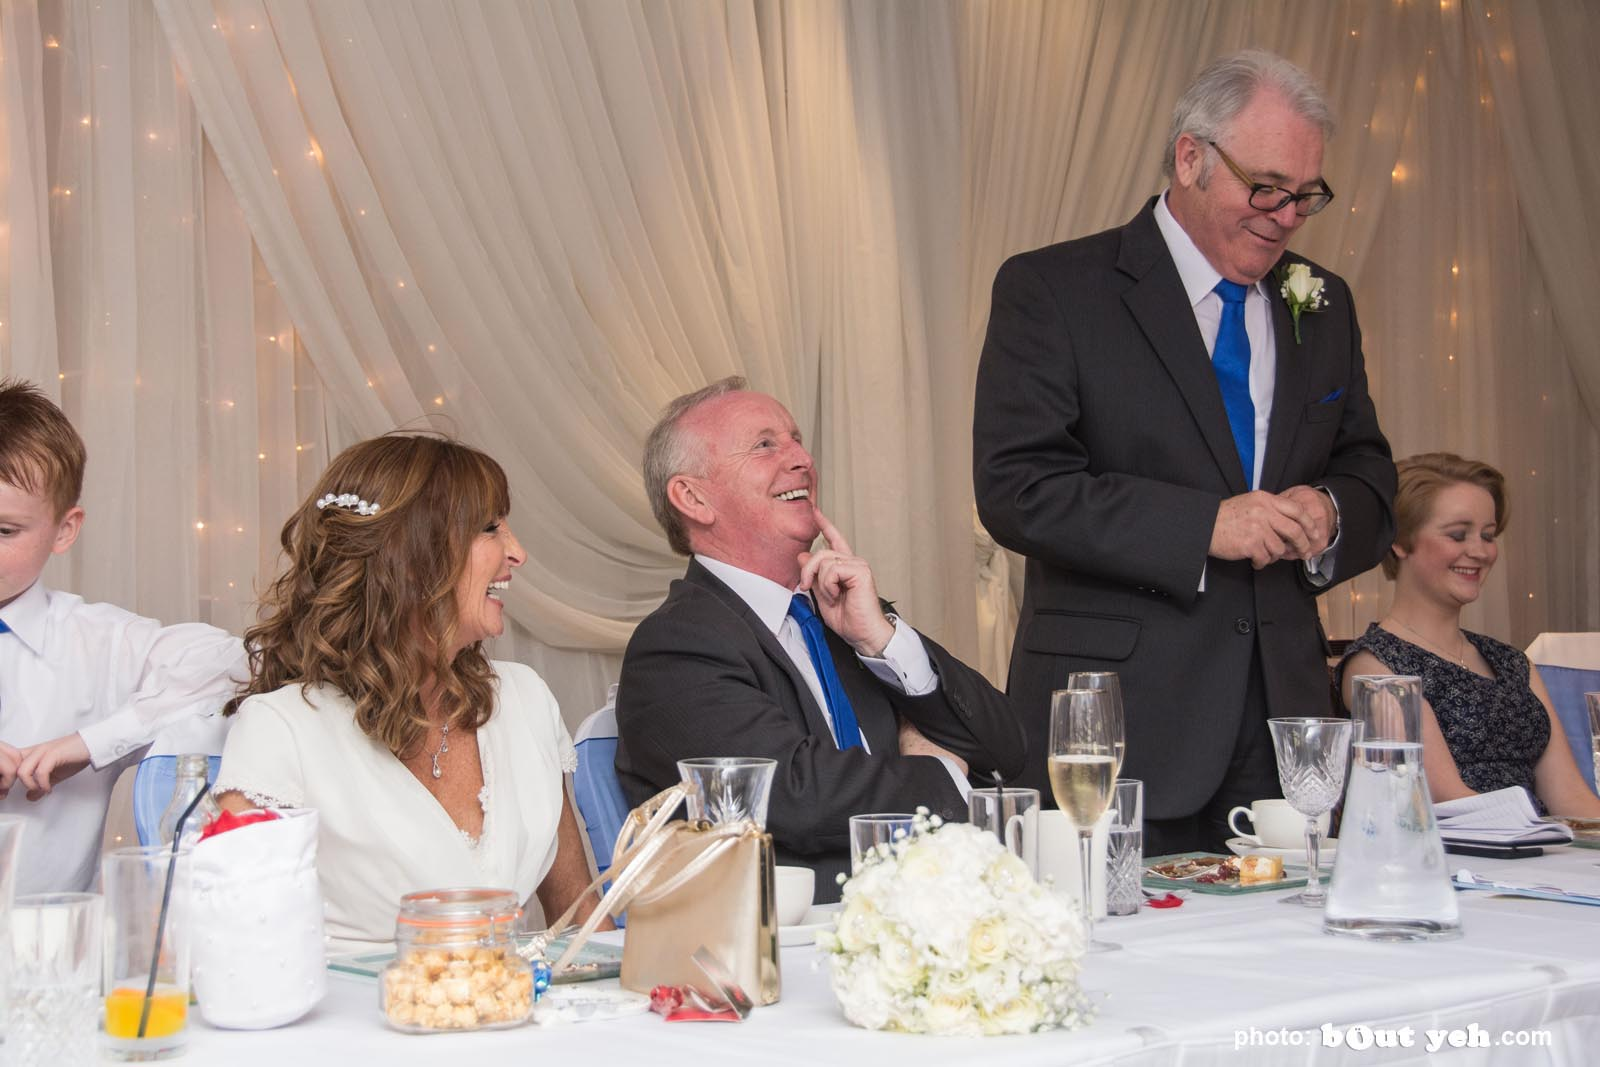 Michael and Annette's wedding photographed by Bout Yeh wedding photographers and video services Belfast and Northern Ireland. Photo 6179